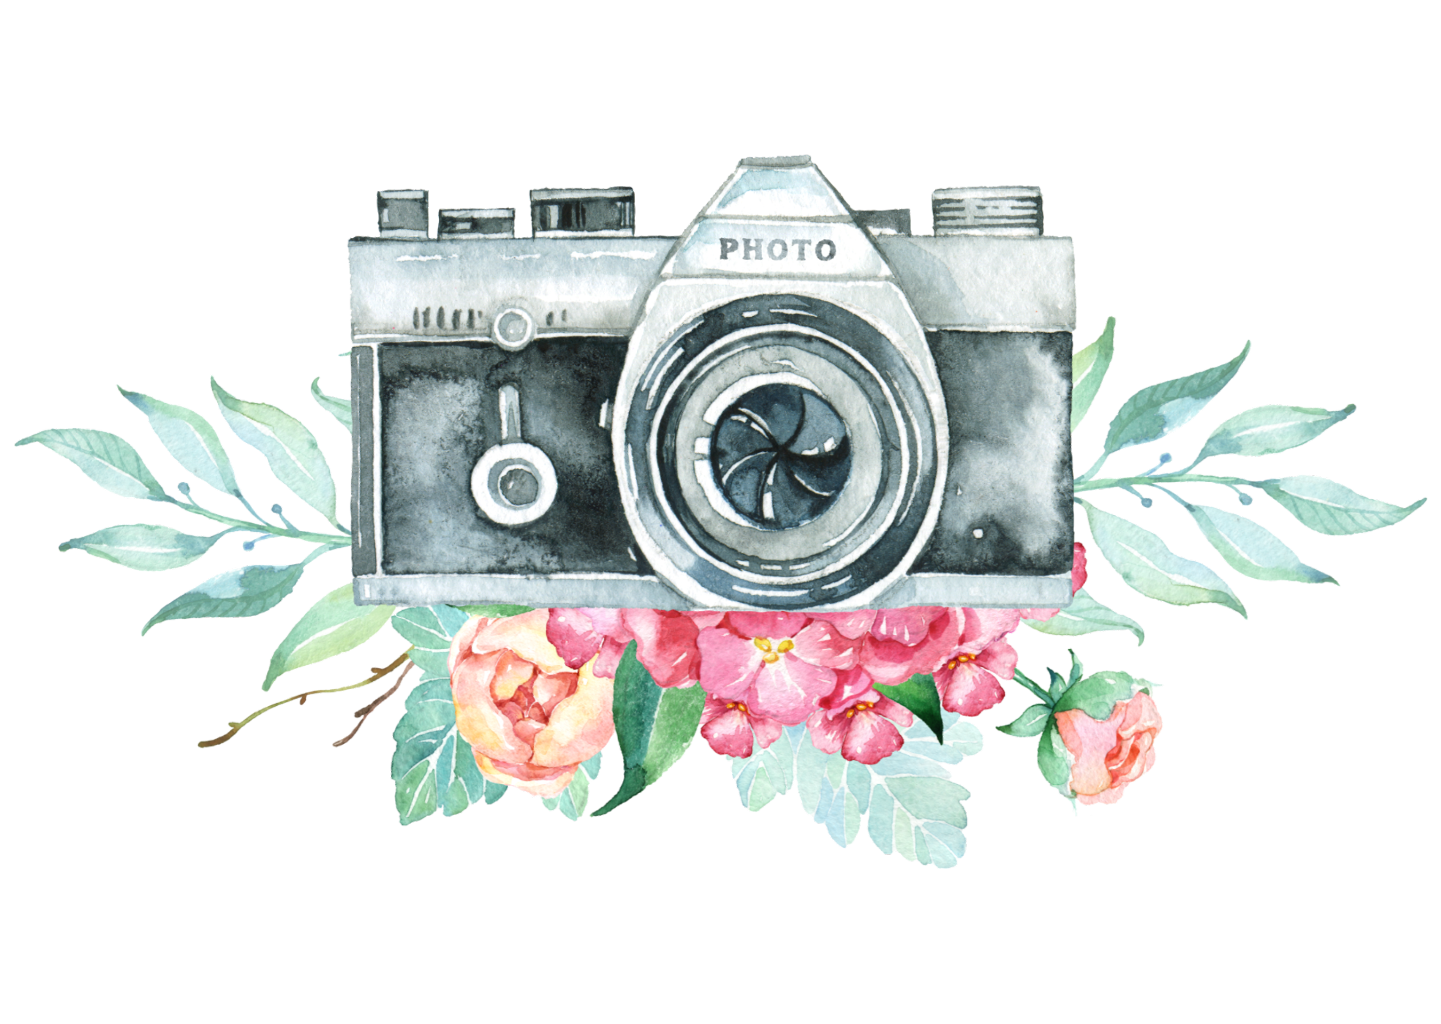 Camera Vintage Vector Png : Camera fotografica vintage vector: old vintage camera from above